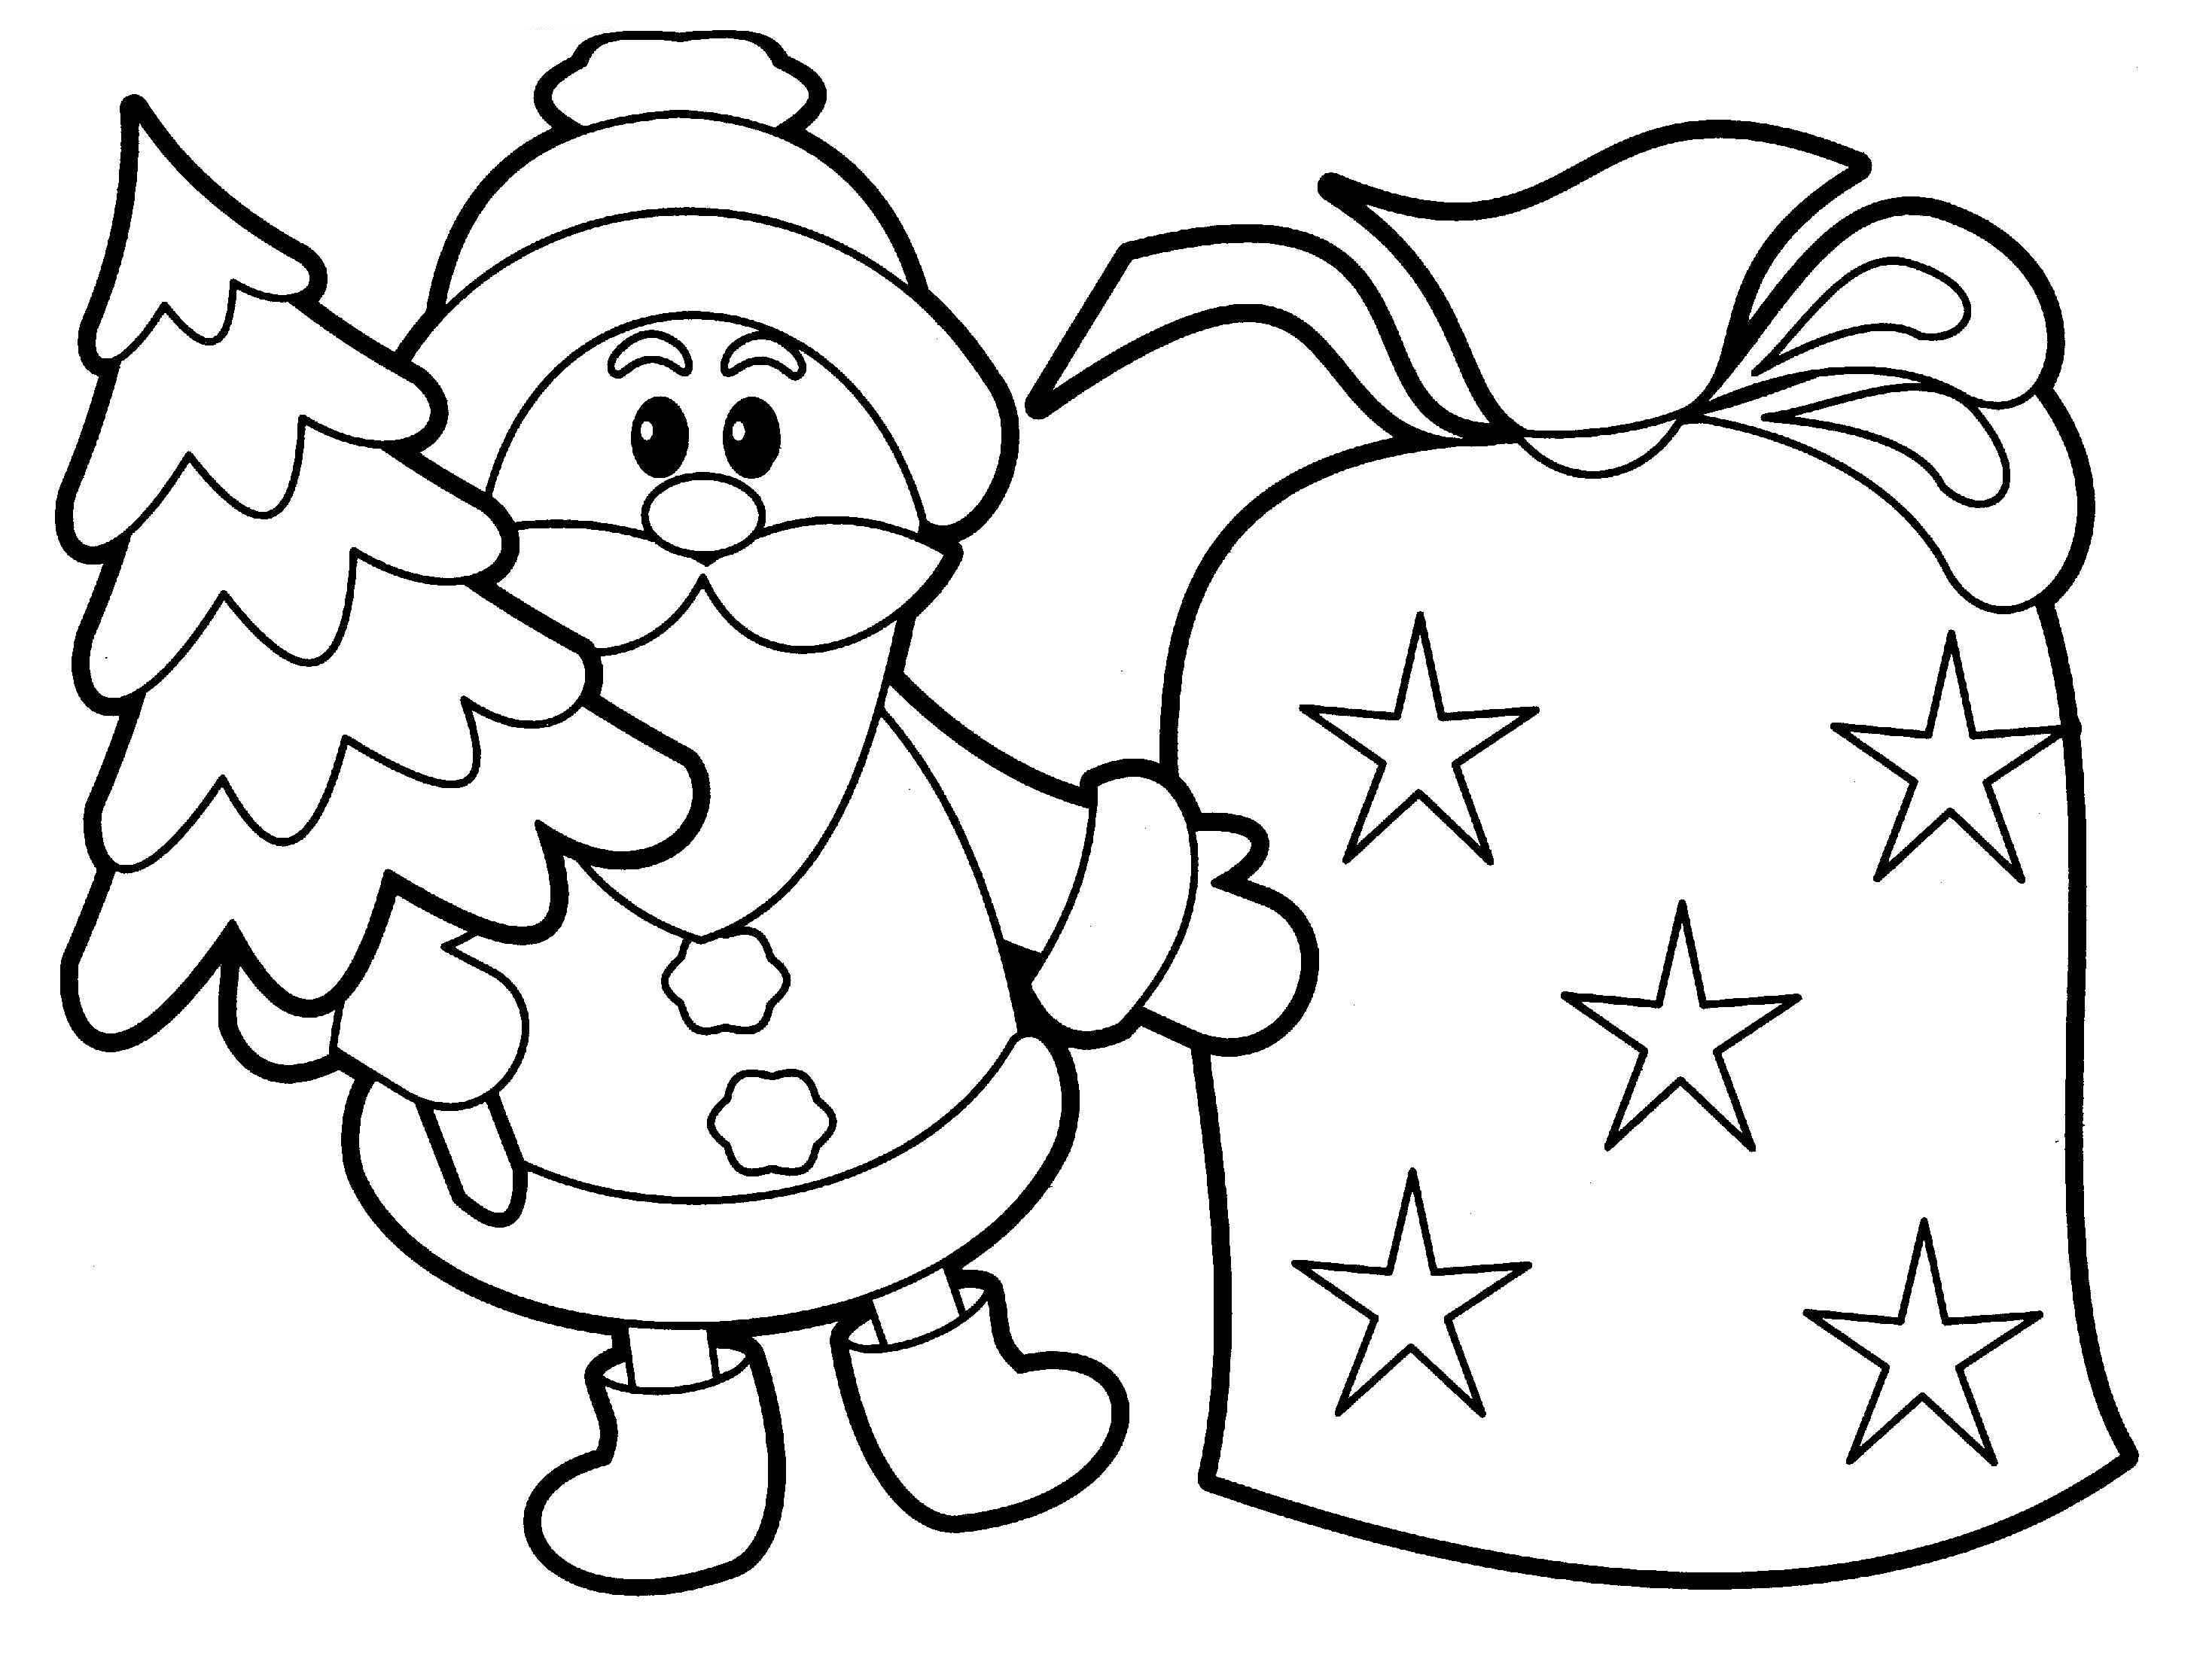 Kids christmas coloring and activity sheets - Merry Christmas Coloring Pages Printable Christmas Tree Coloring